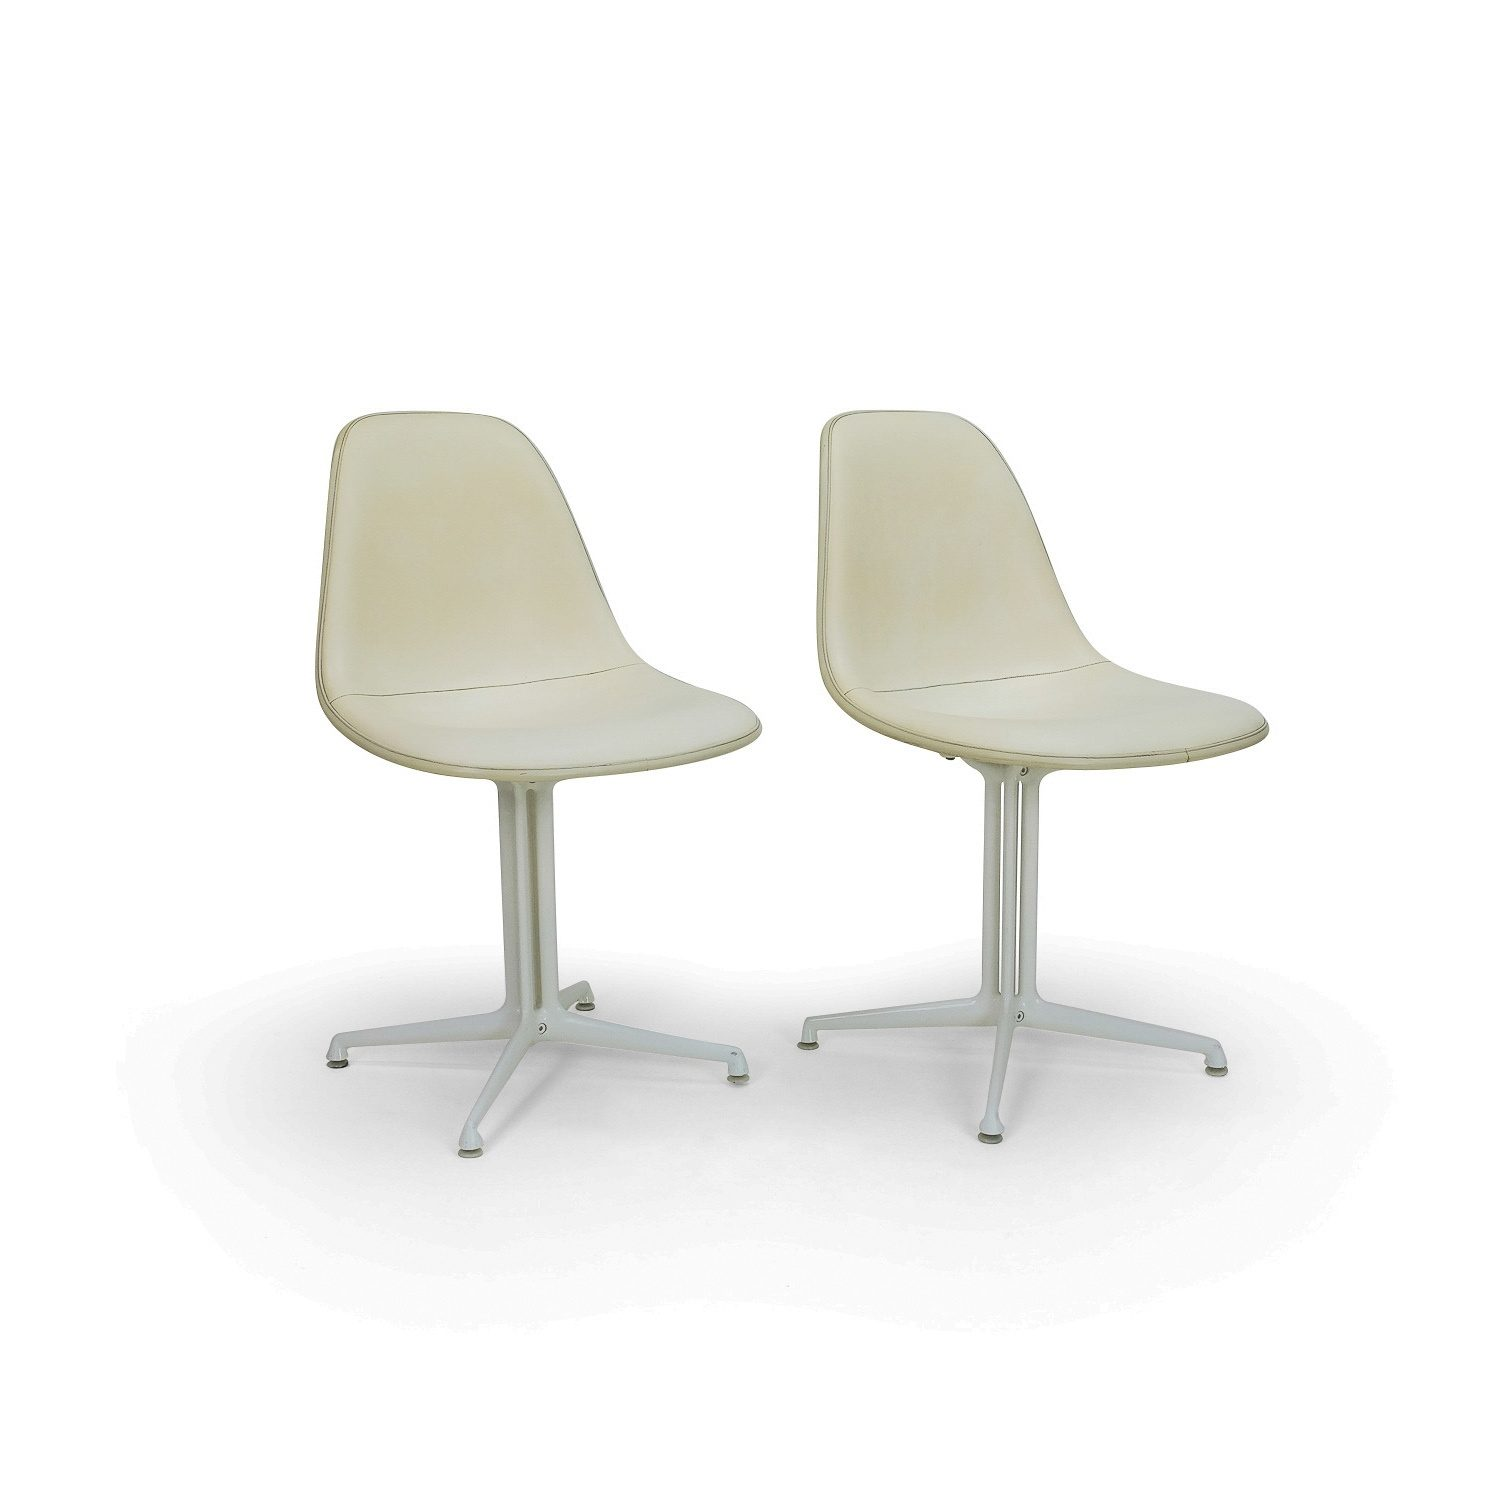 Vintage Herman Miller Side Chairs with la Fonda Base. Early 1960s